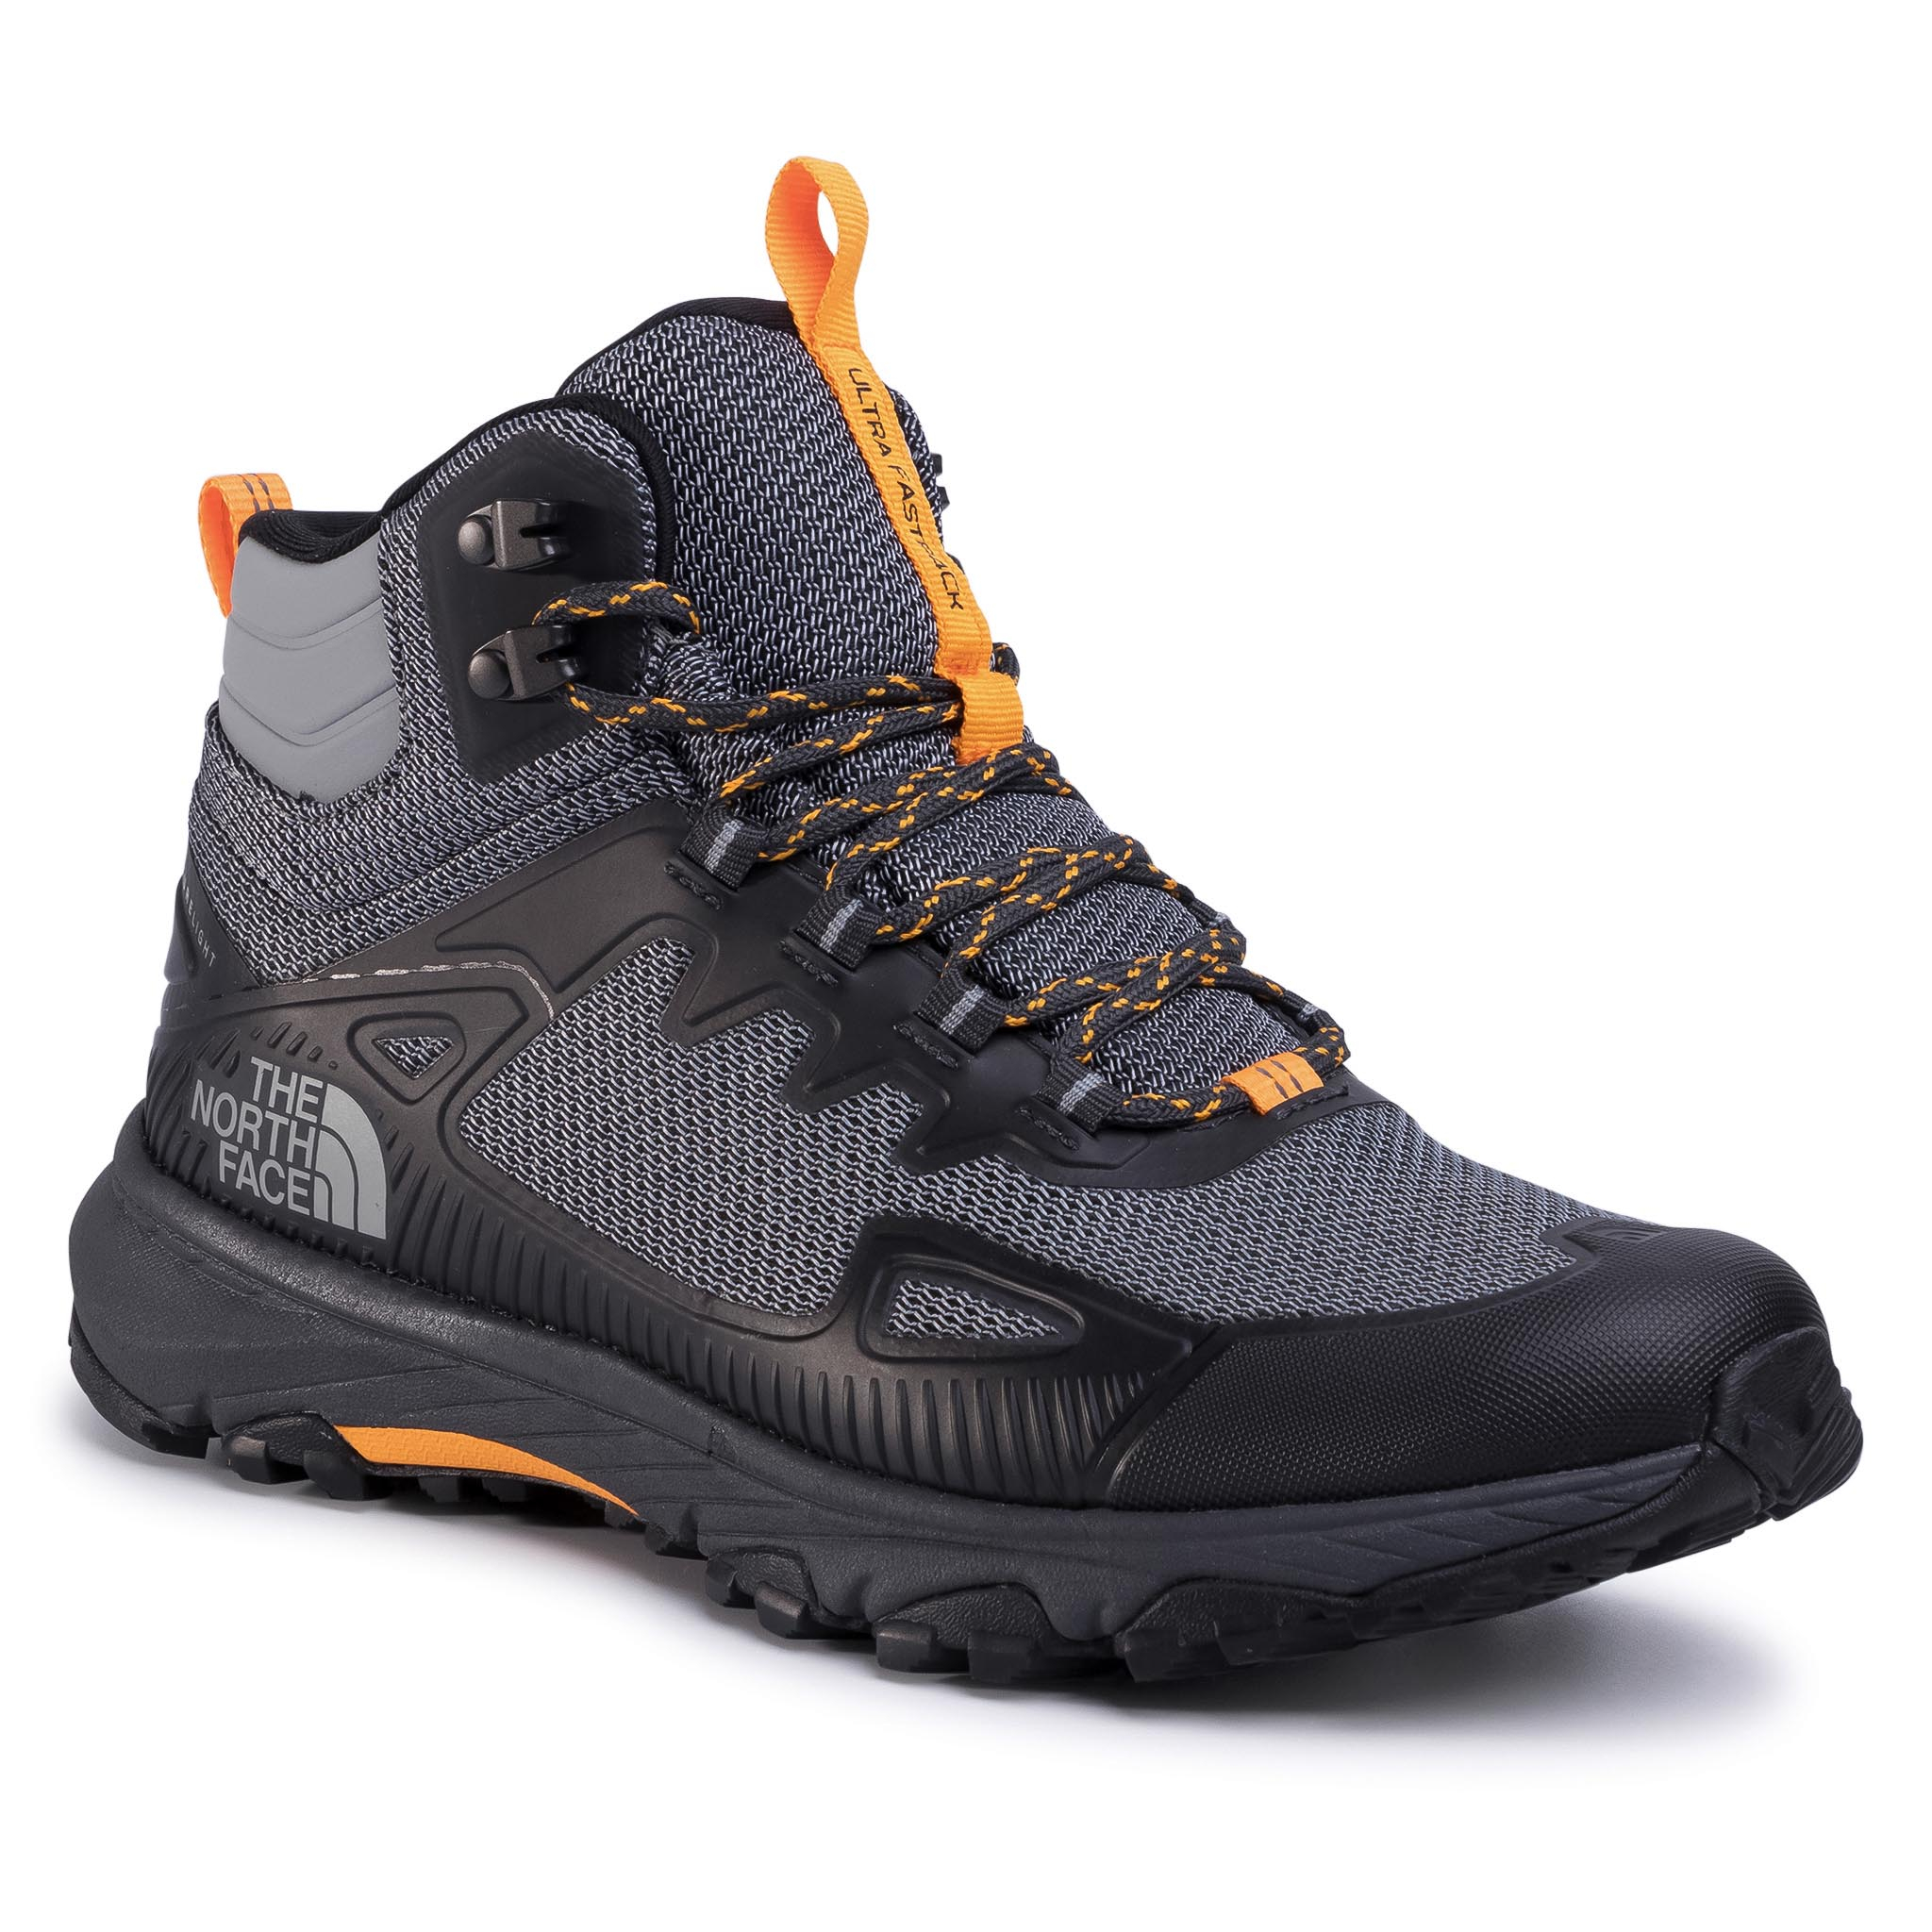 Trekkings The North Face - Ultra Fastpack Iv Mid Futurelight Nf0a46bug3a Dark Shadow Grey/Griffin Grey imagine epantofi.ro 2021